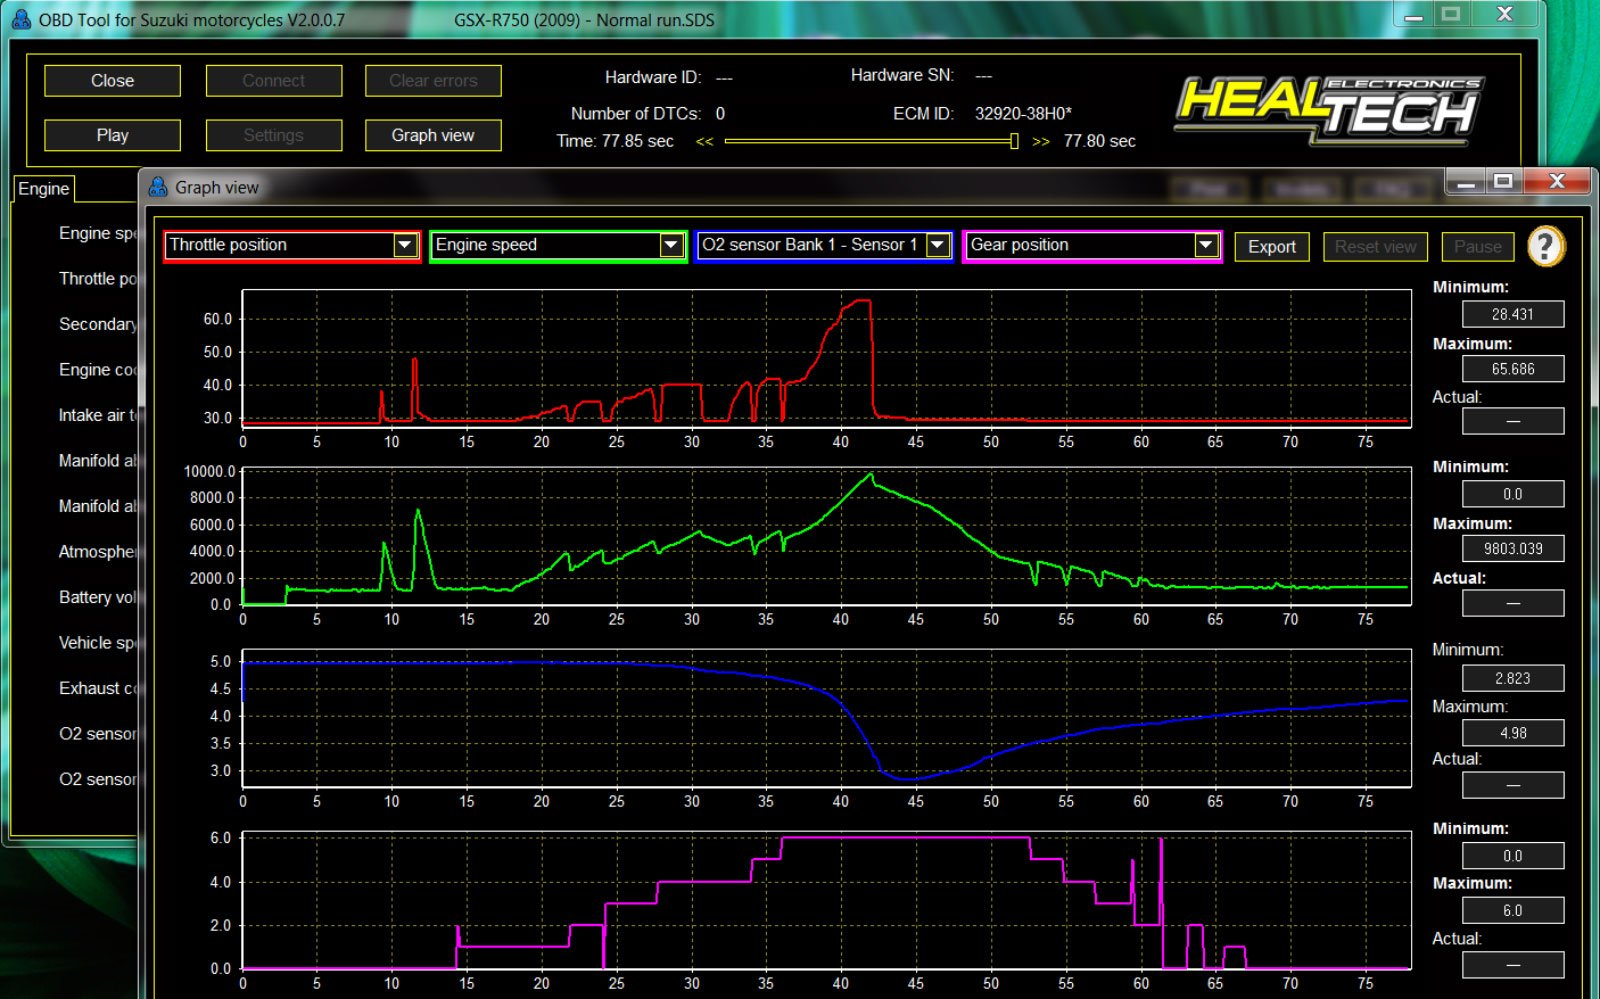 OBD Tool graph view